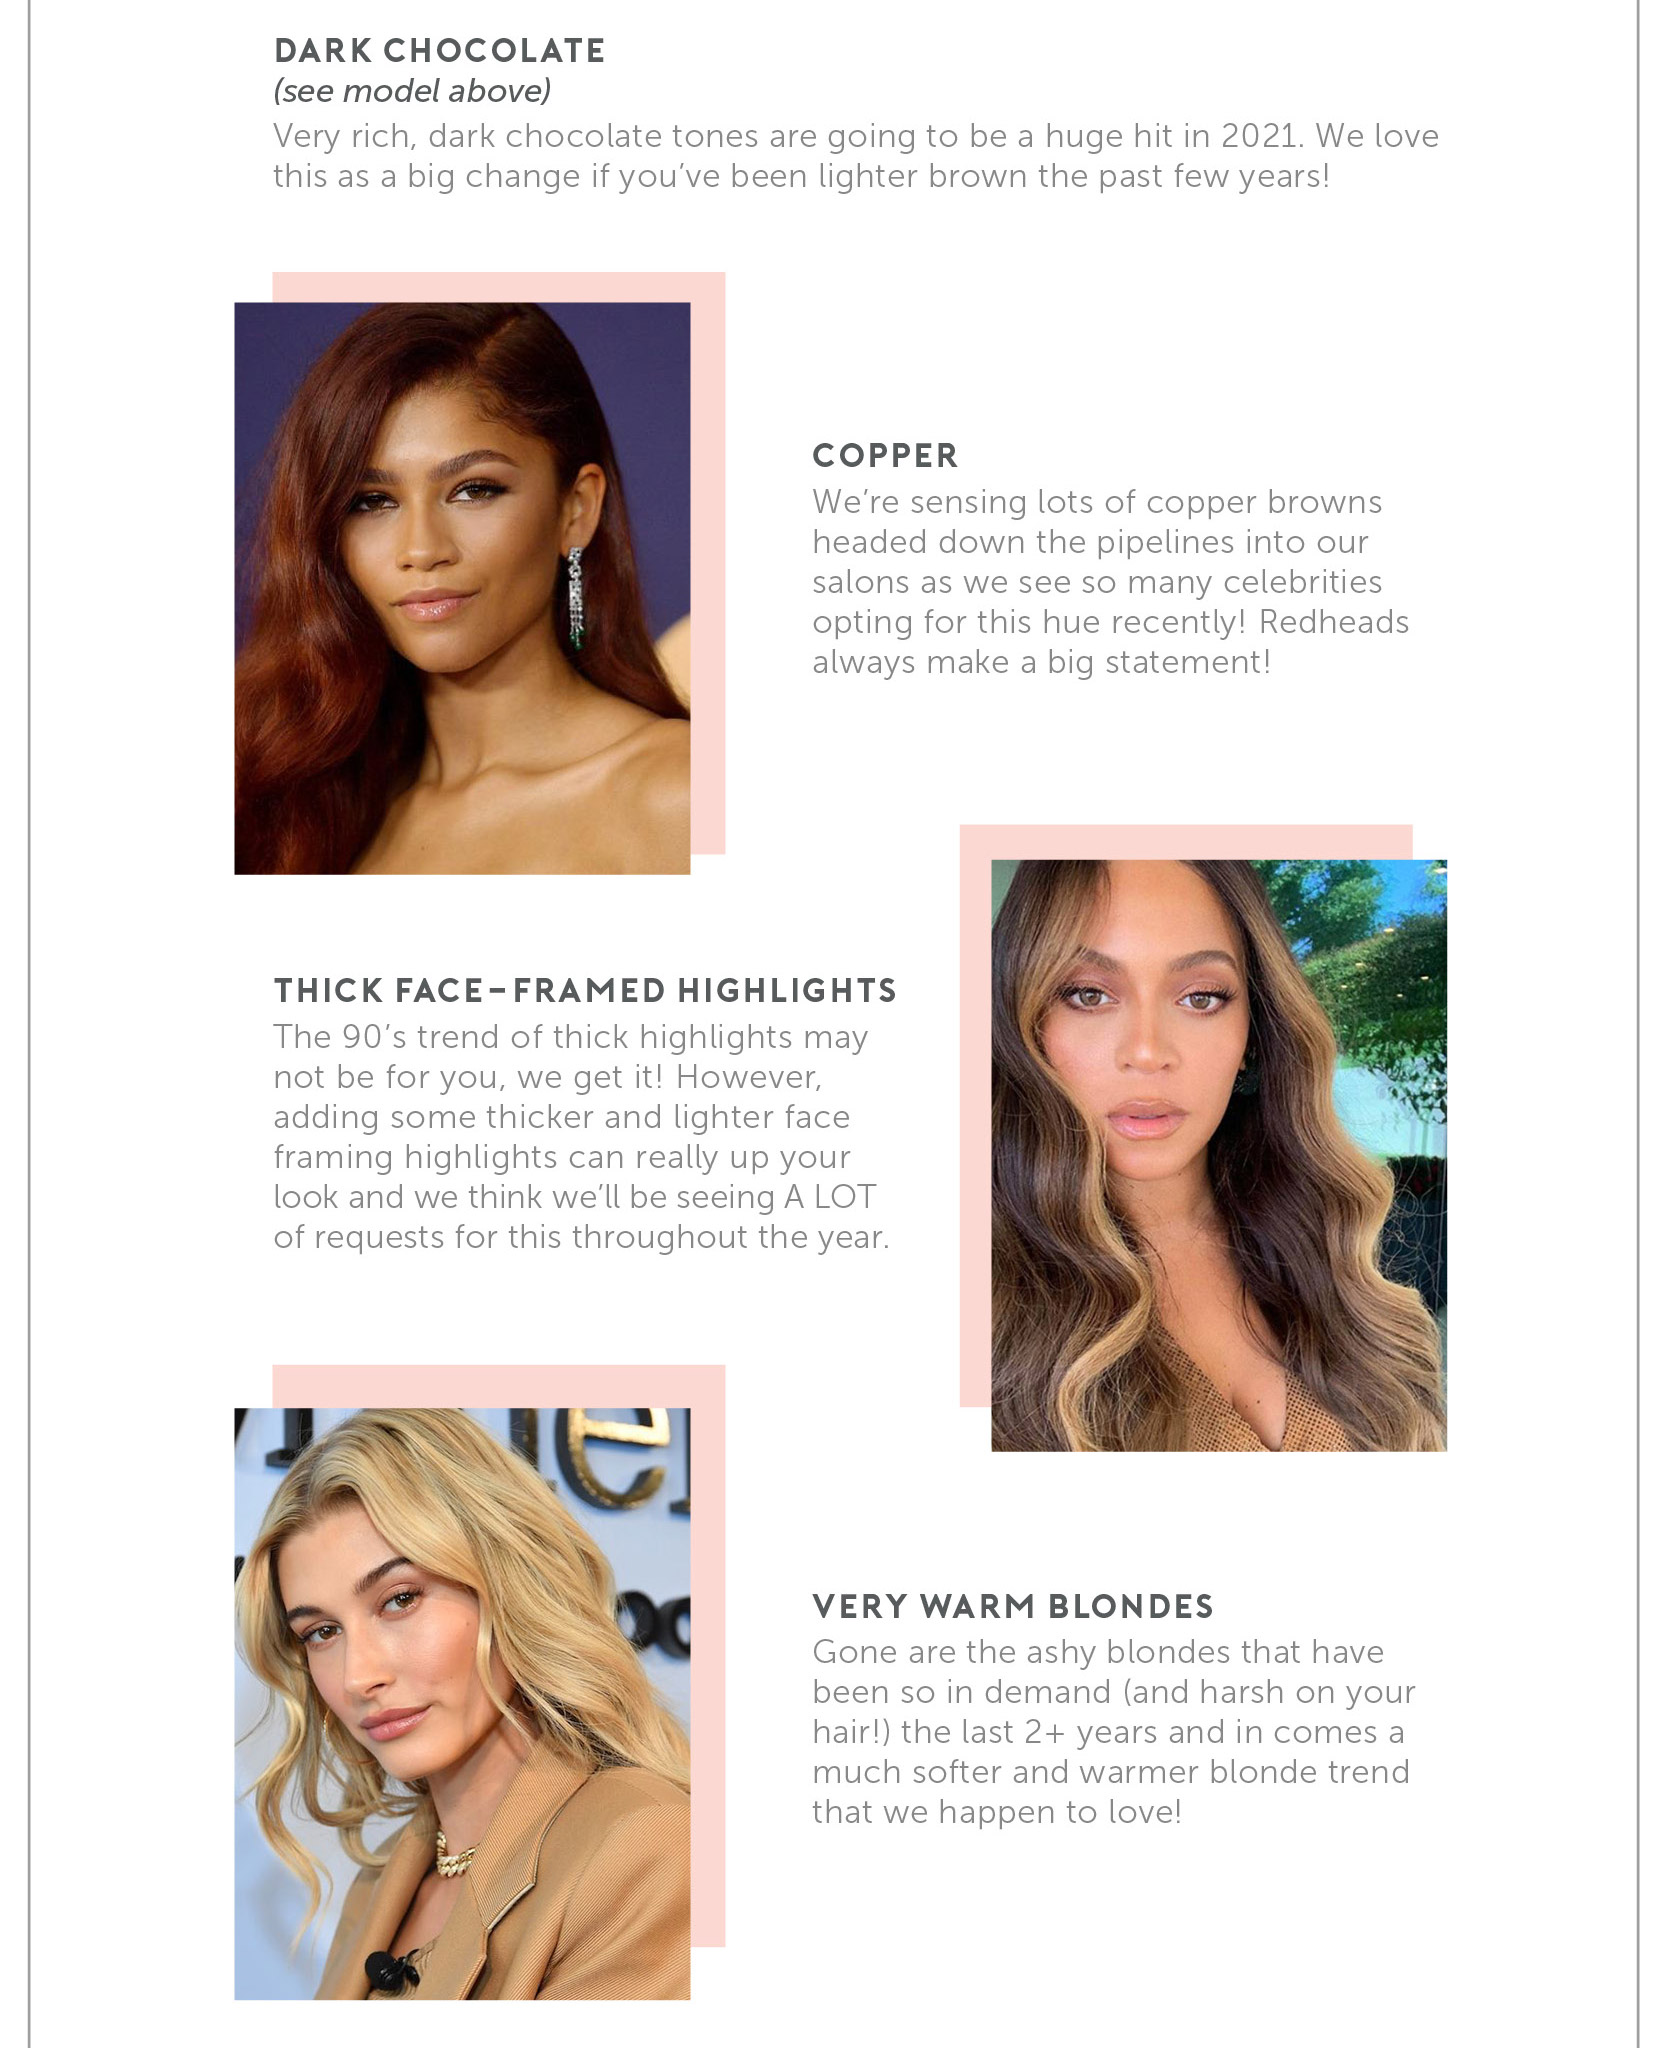 2021 Hair Color Trends – Dark Chocolate | Copper | Thick Face-Framed Highlights | Very Warm Blondes